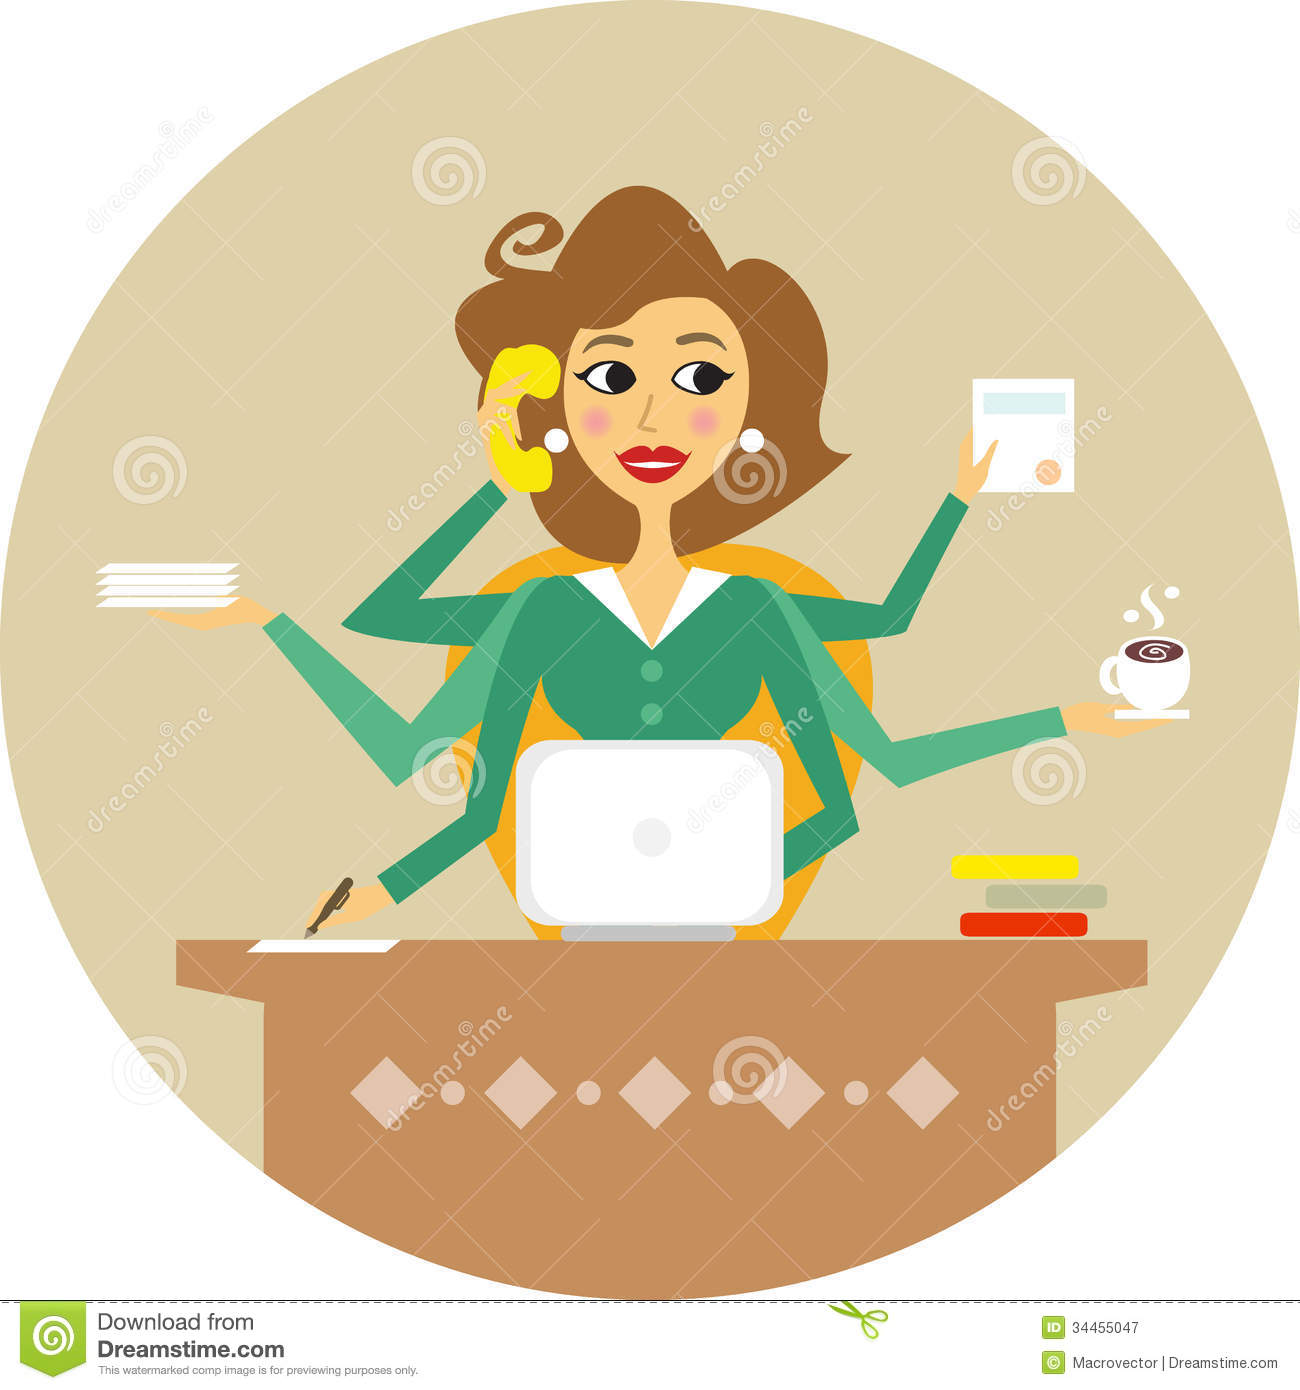 Secretary Personal Assistant Hard Working Symbol Stock Illustrations.